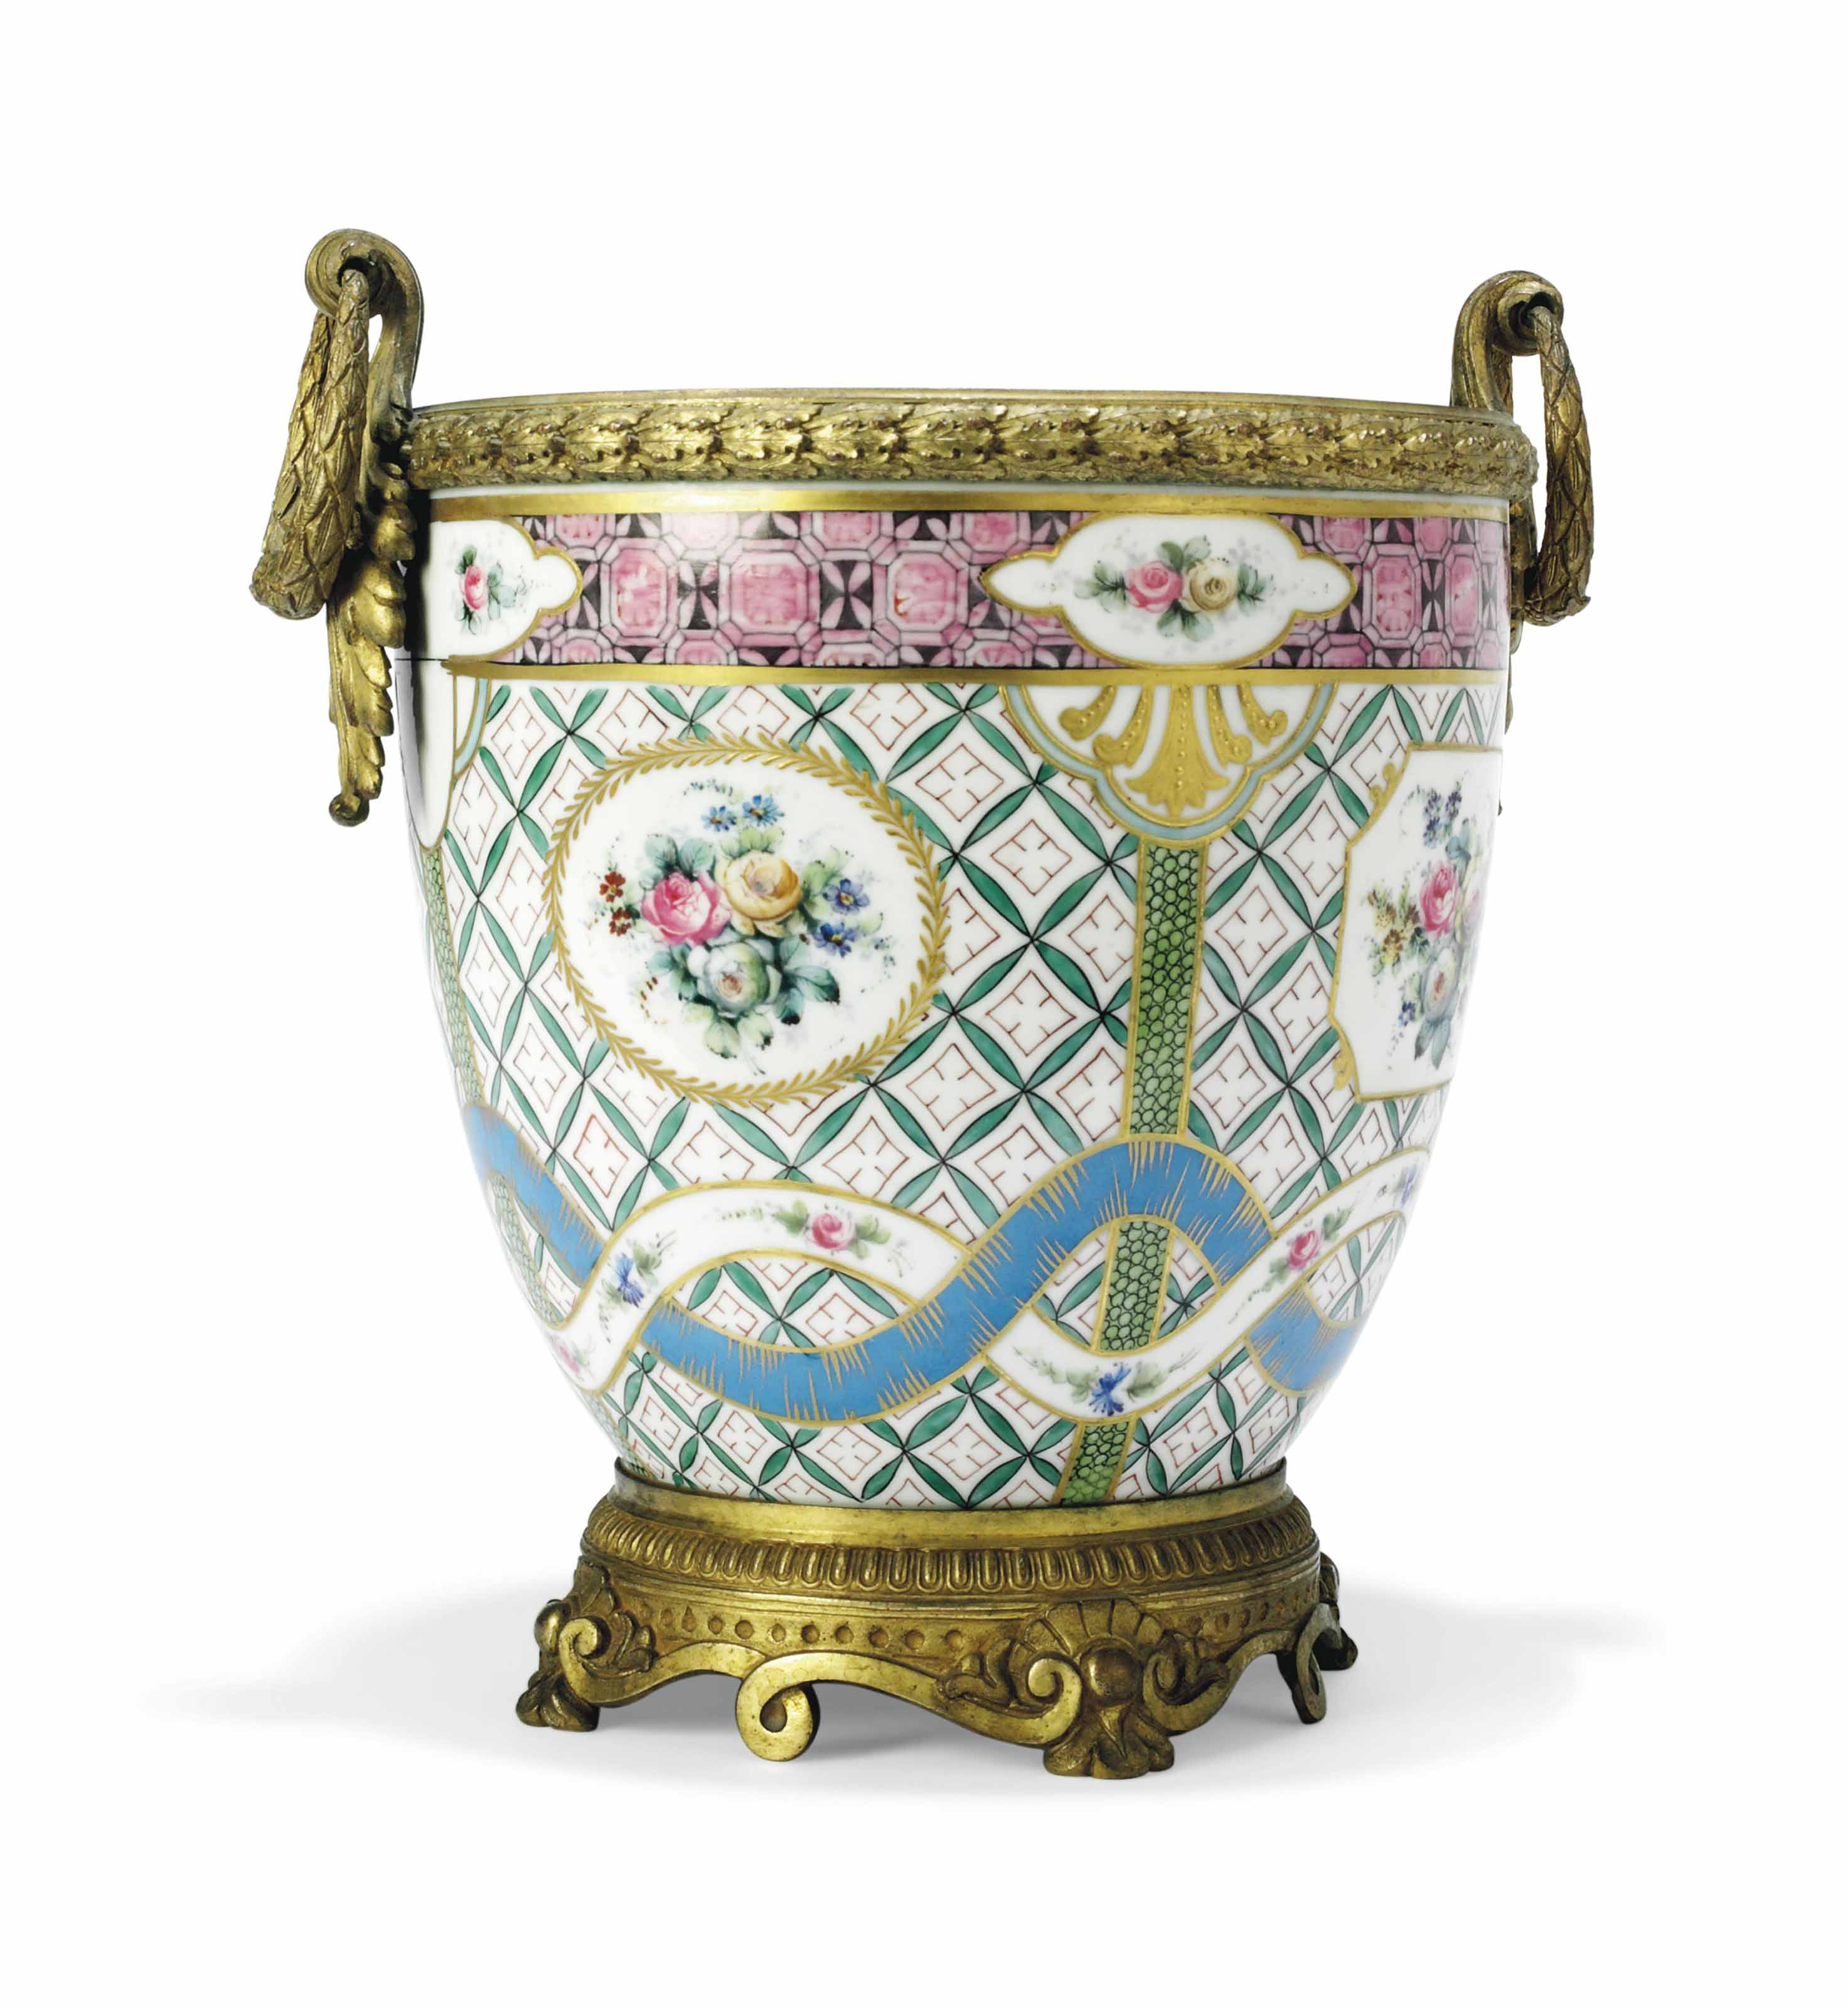 A CONTINENTAL GILT-METAL-MOUNTED SEVRES-STYLE VASE